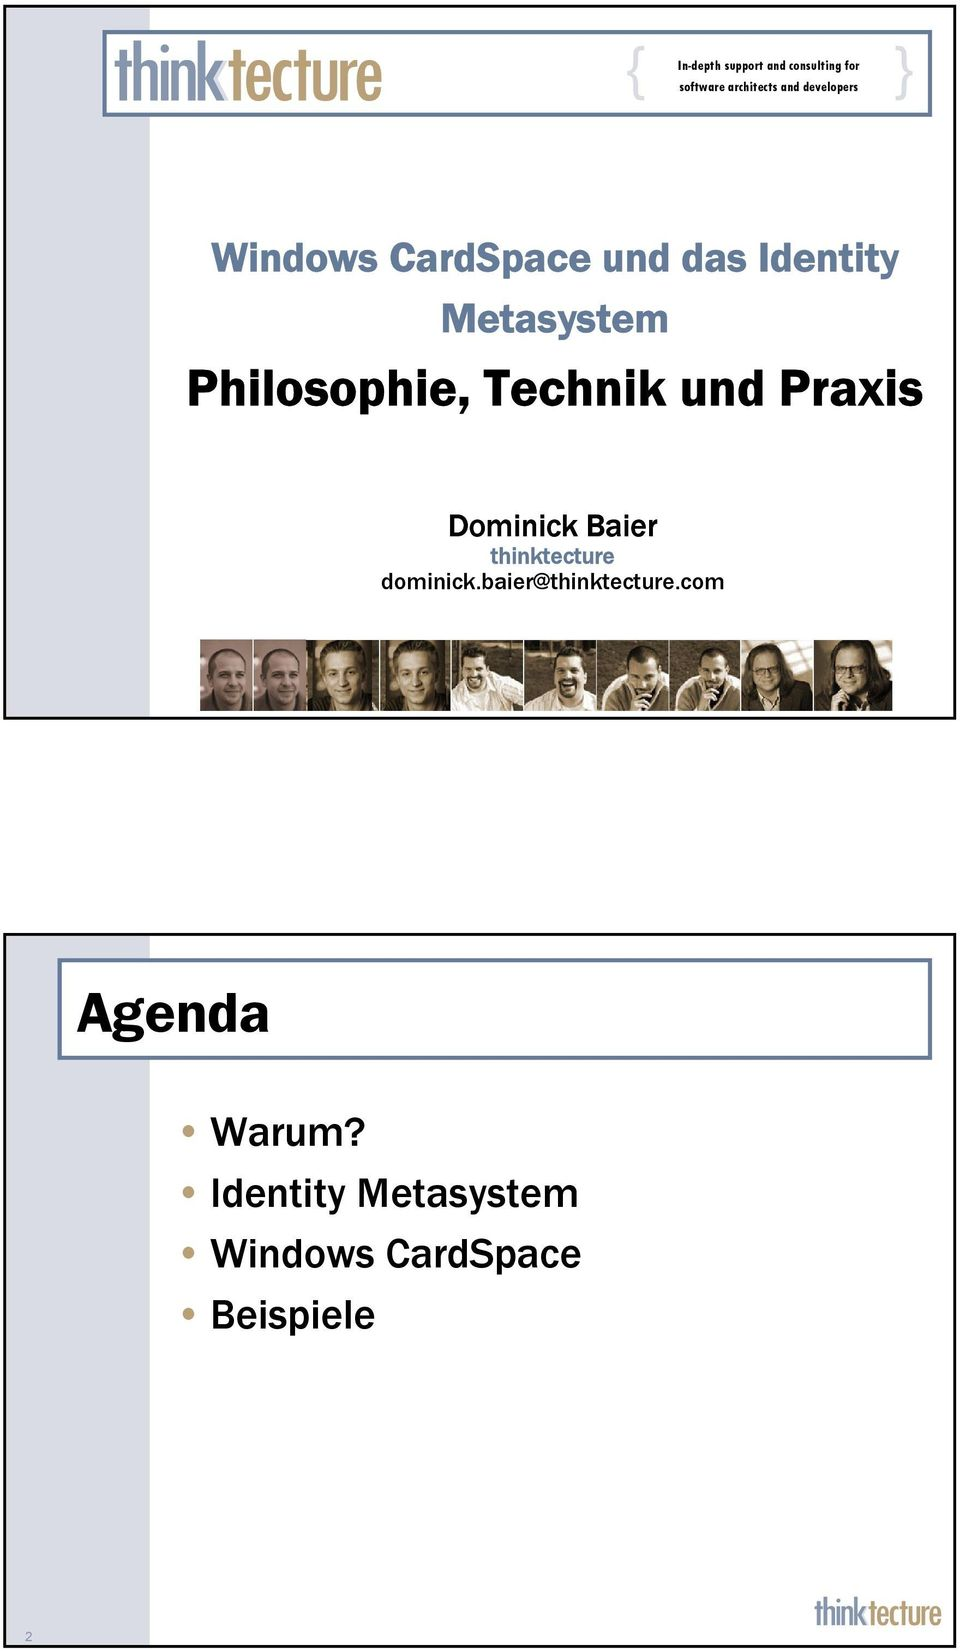 Philosophie, Technik und Praxis Dominick Baier thinktecture dominick.